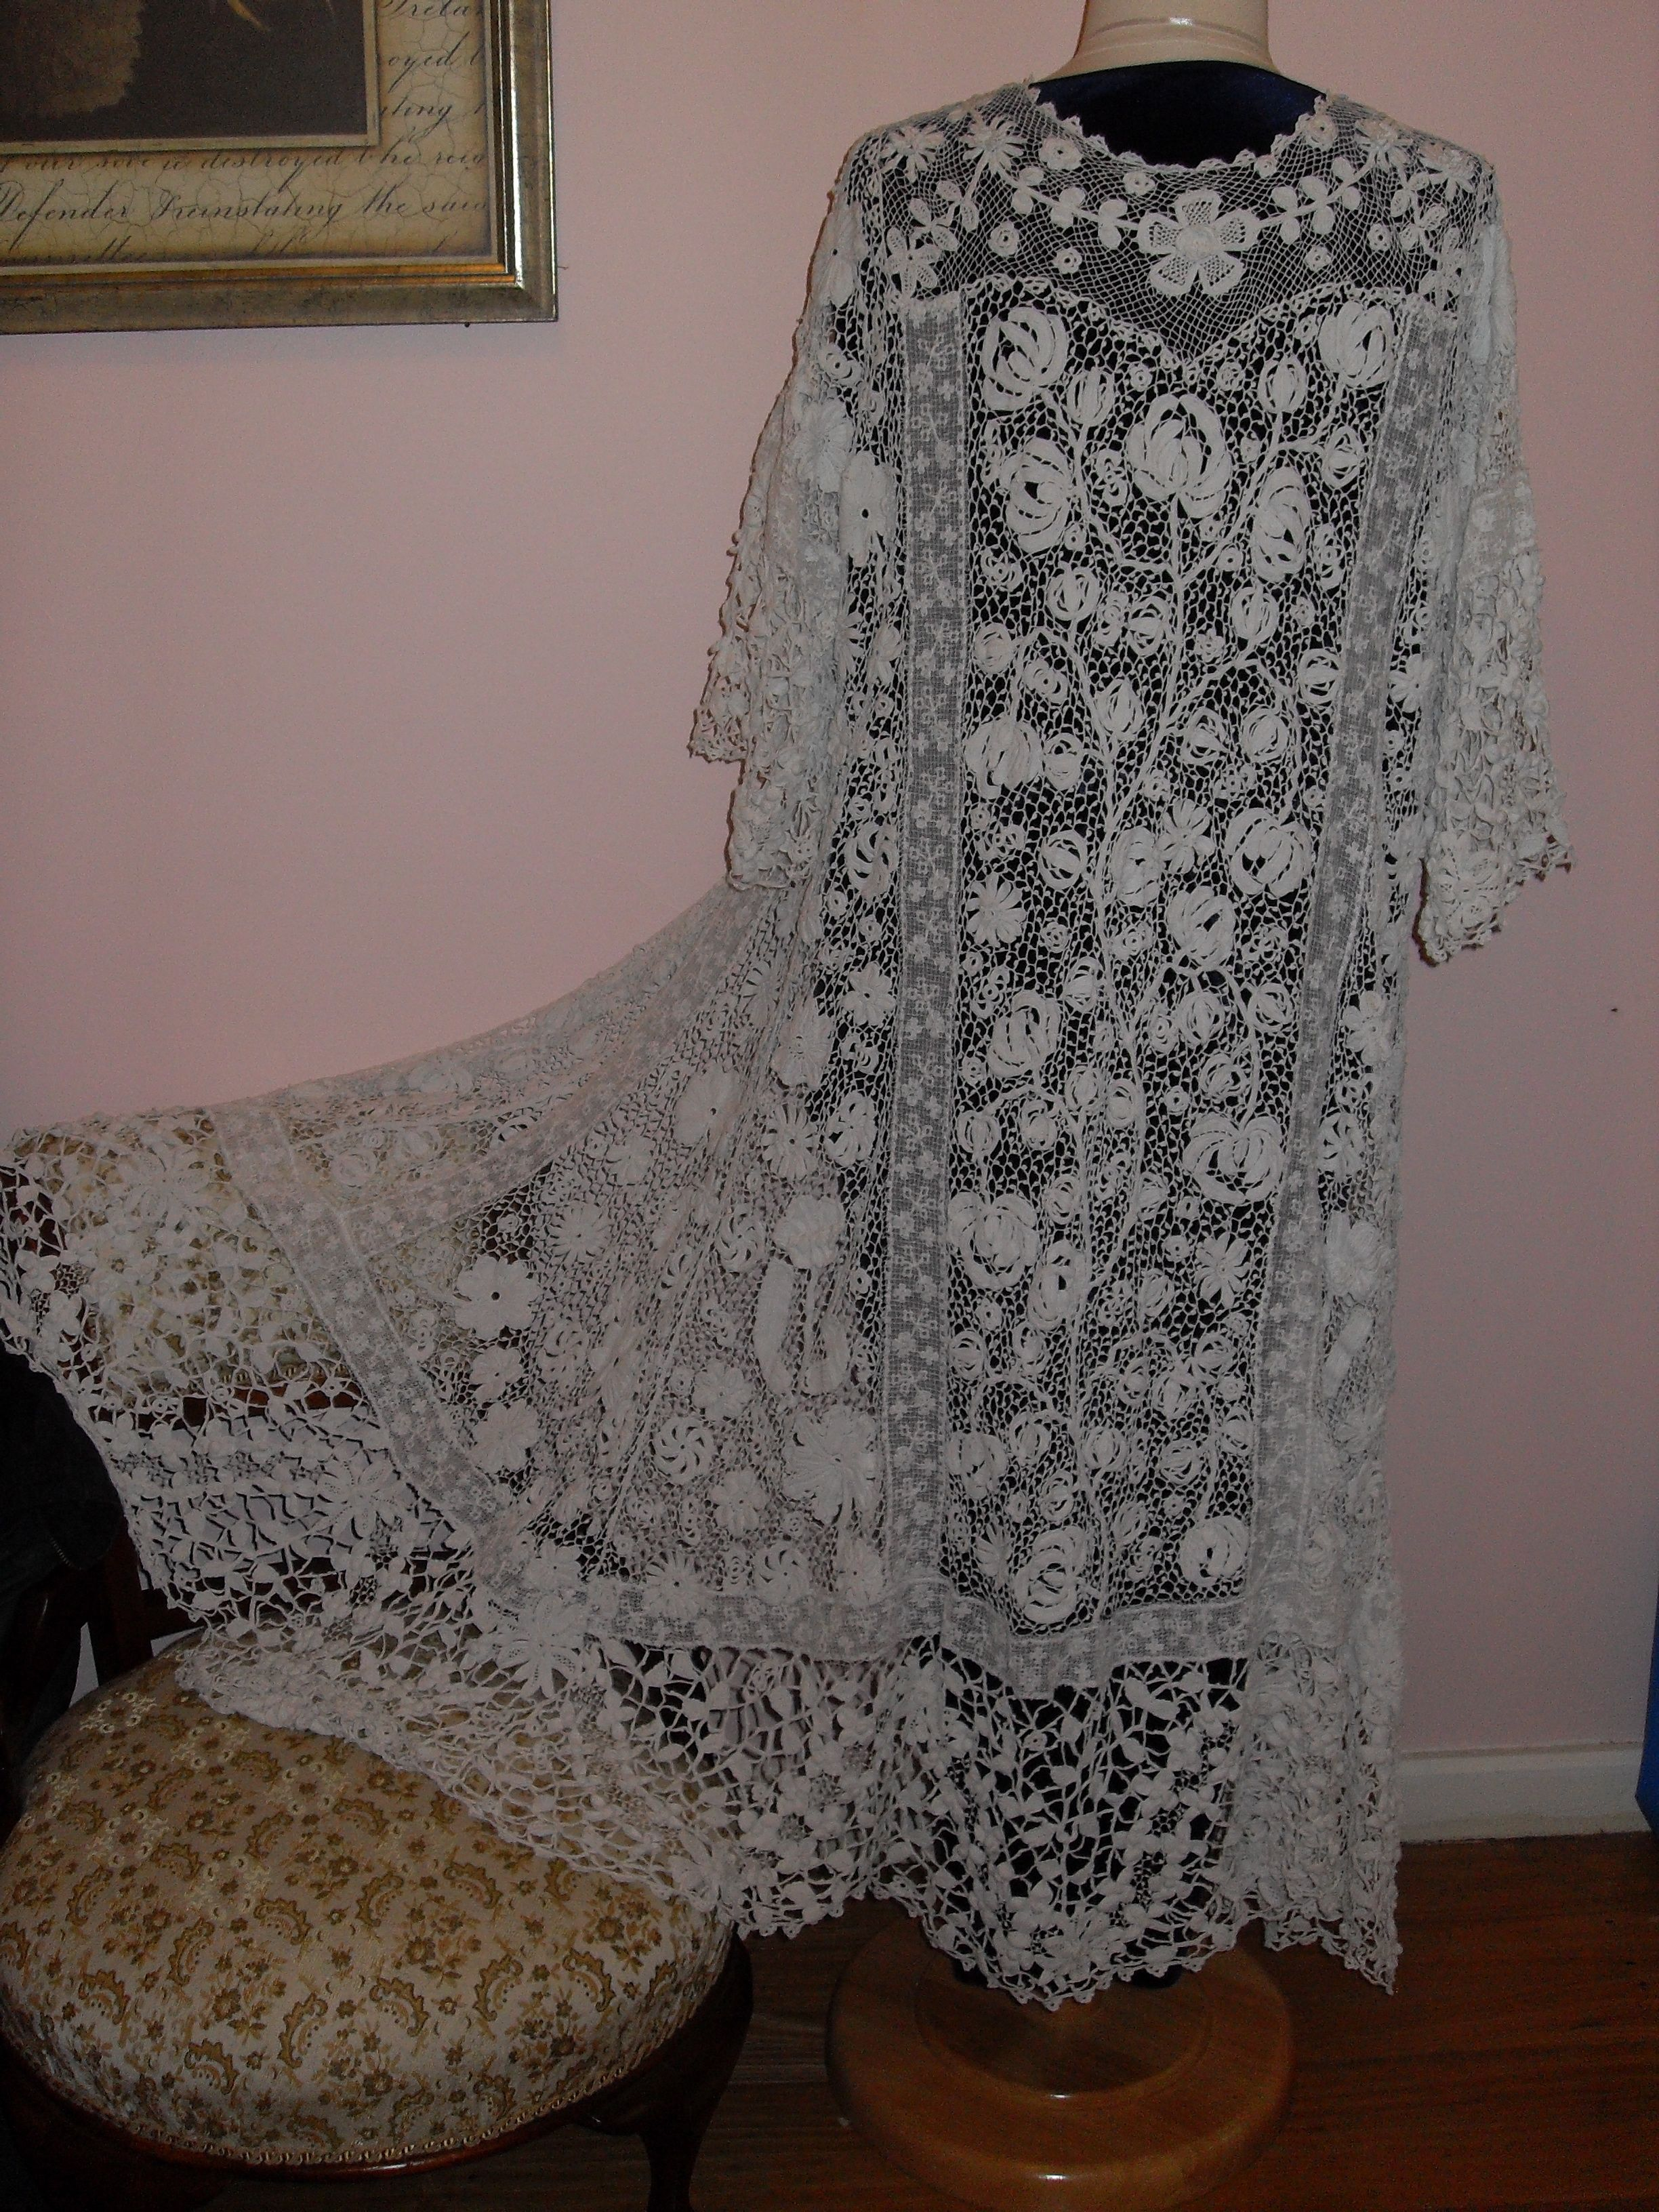 I brought this two years ago. I was in a terrible condition with large holes and very yellow. It took me 3 months to restore to its full glory. c1900. Irish Lace Coat.